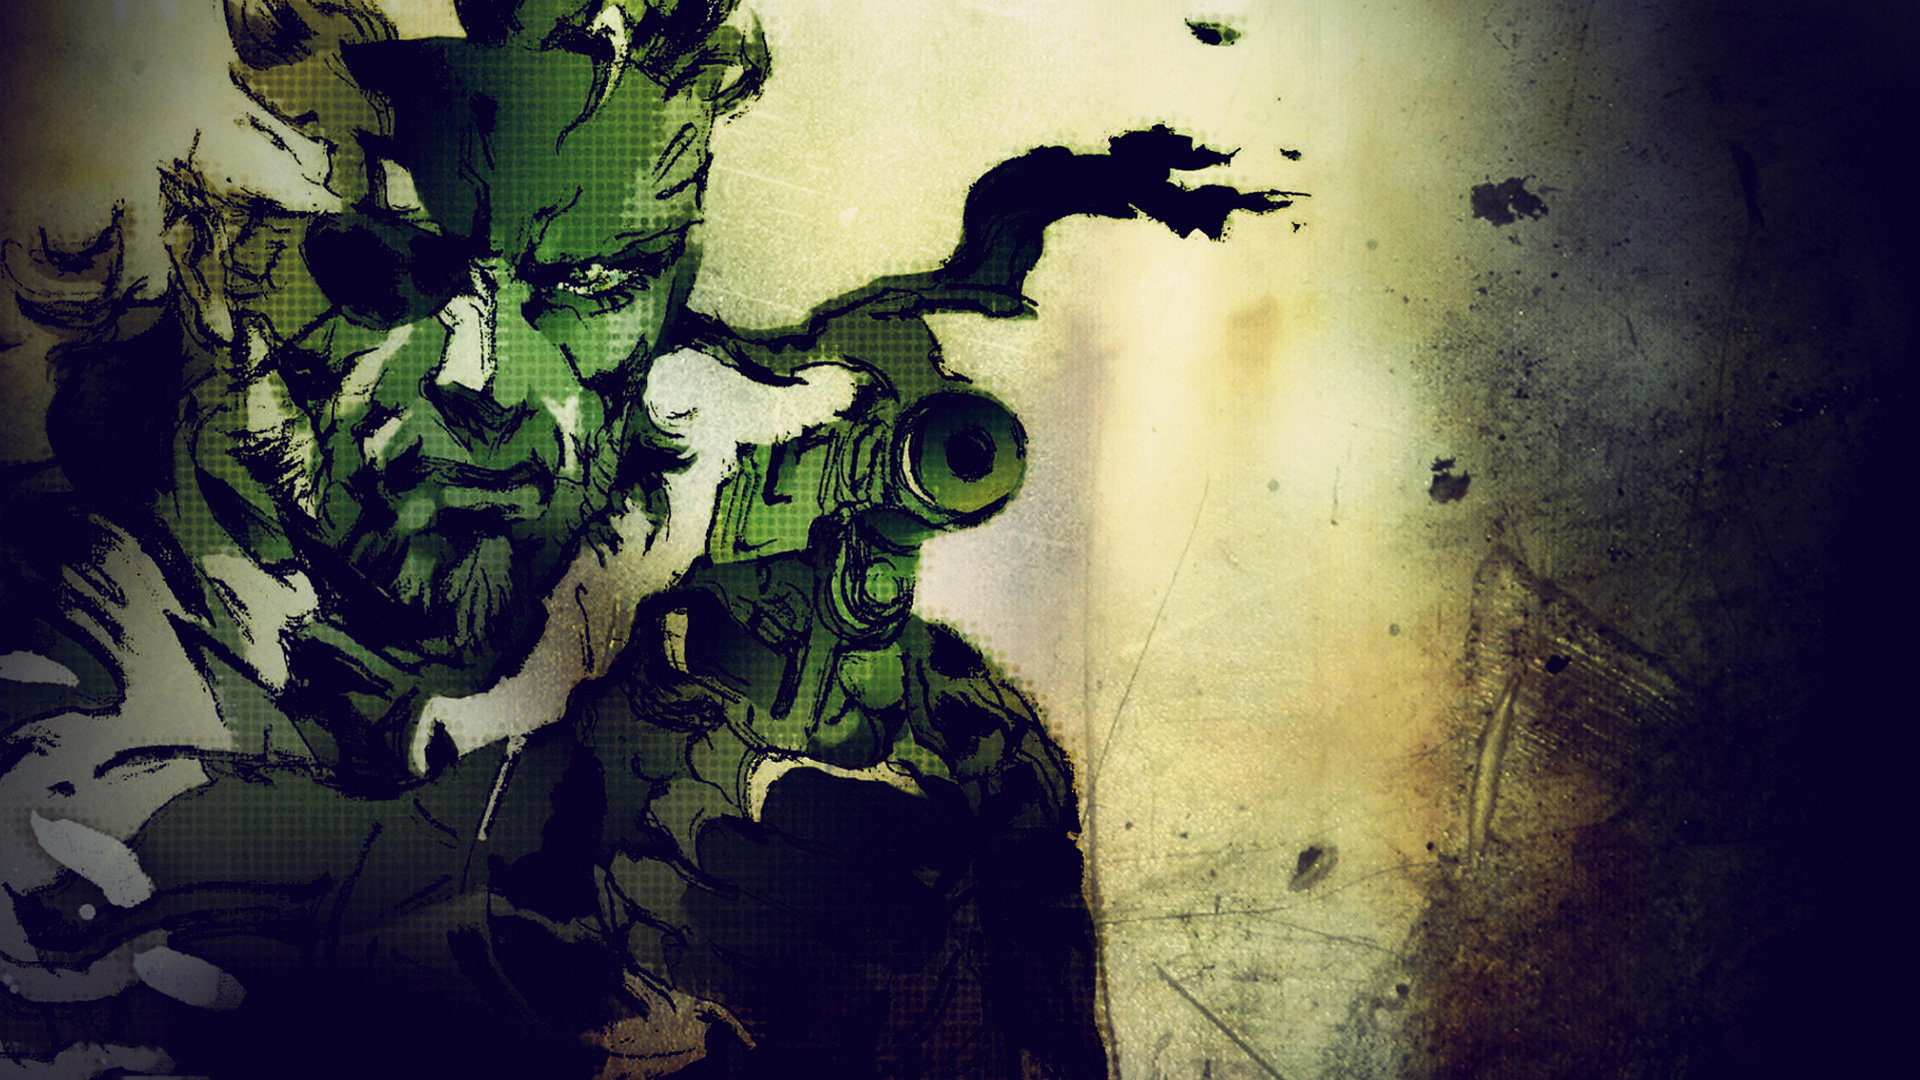 awesome solid snake free wallpaper id 120992 for full hd 1080p pc